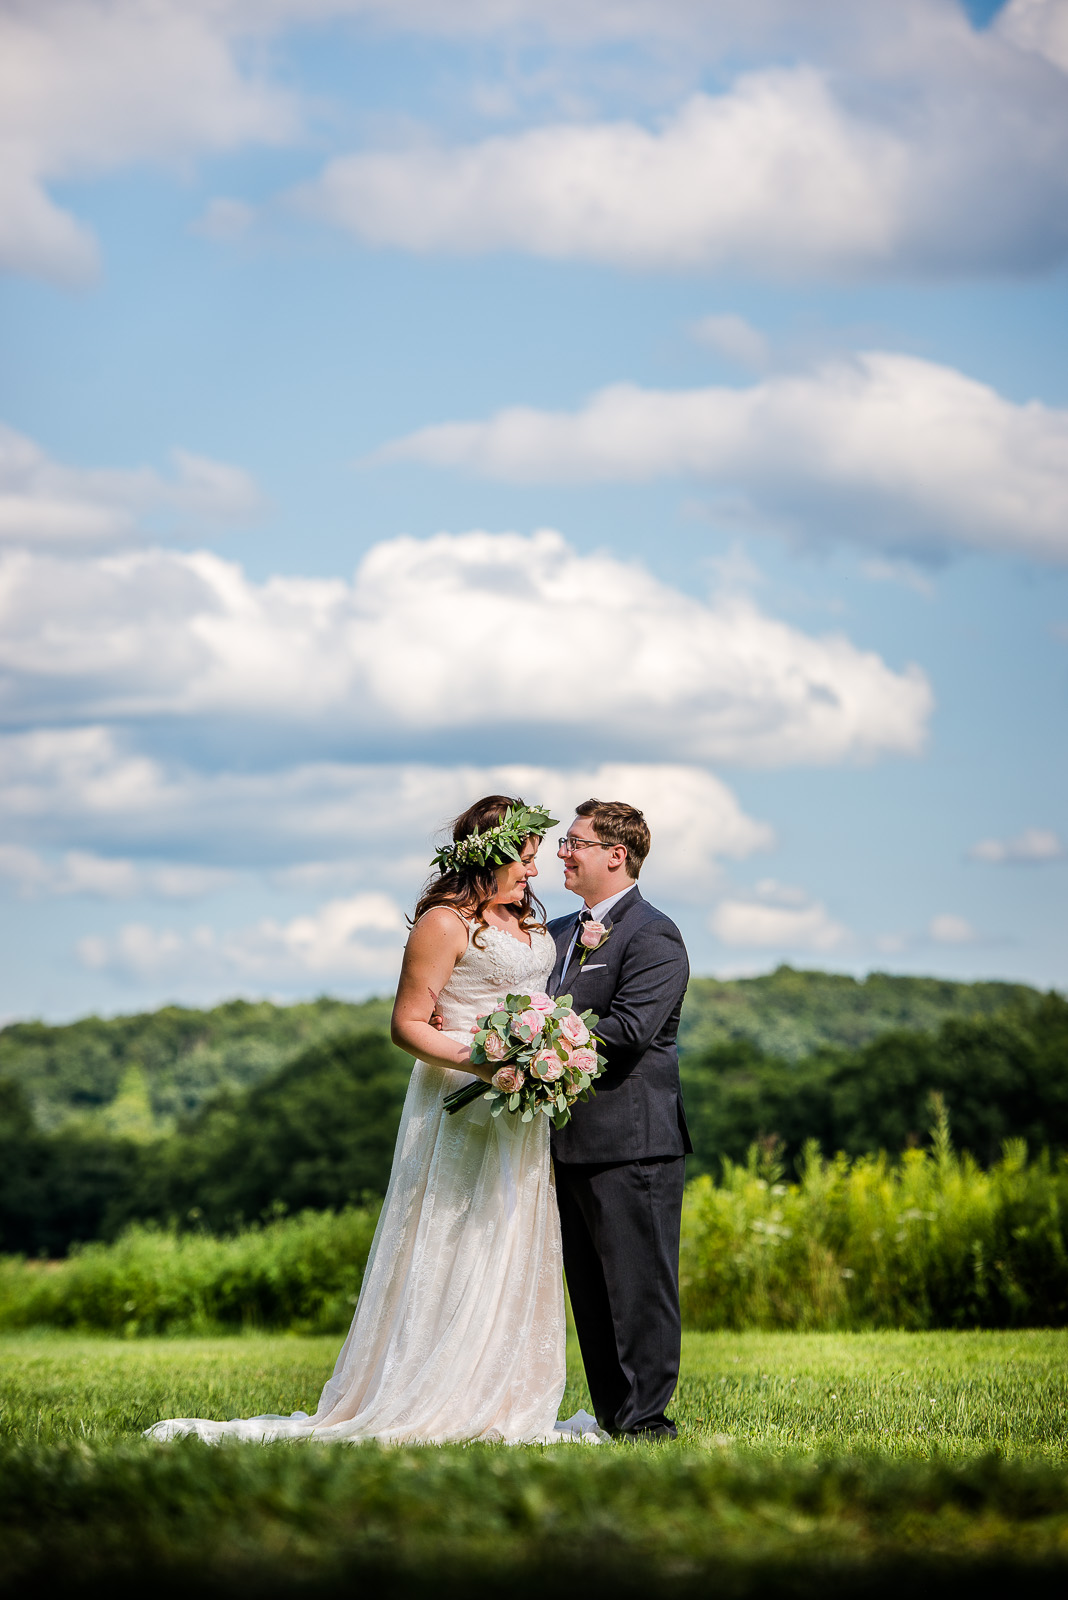 Eric_and_Christy_Photography_Blog_Wedding_Keara&Andy-39